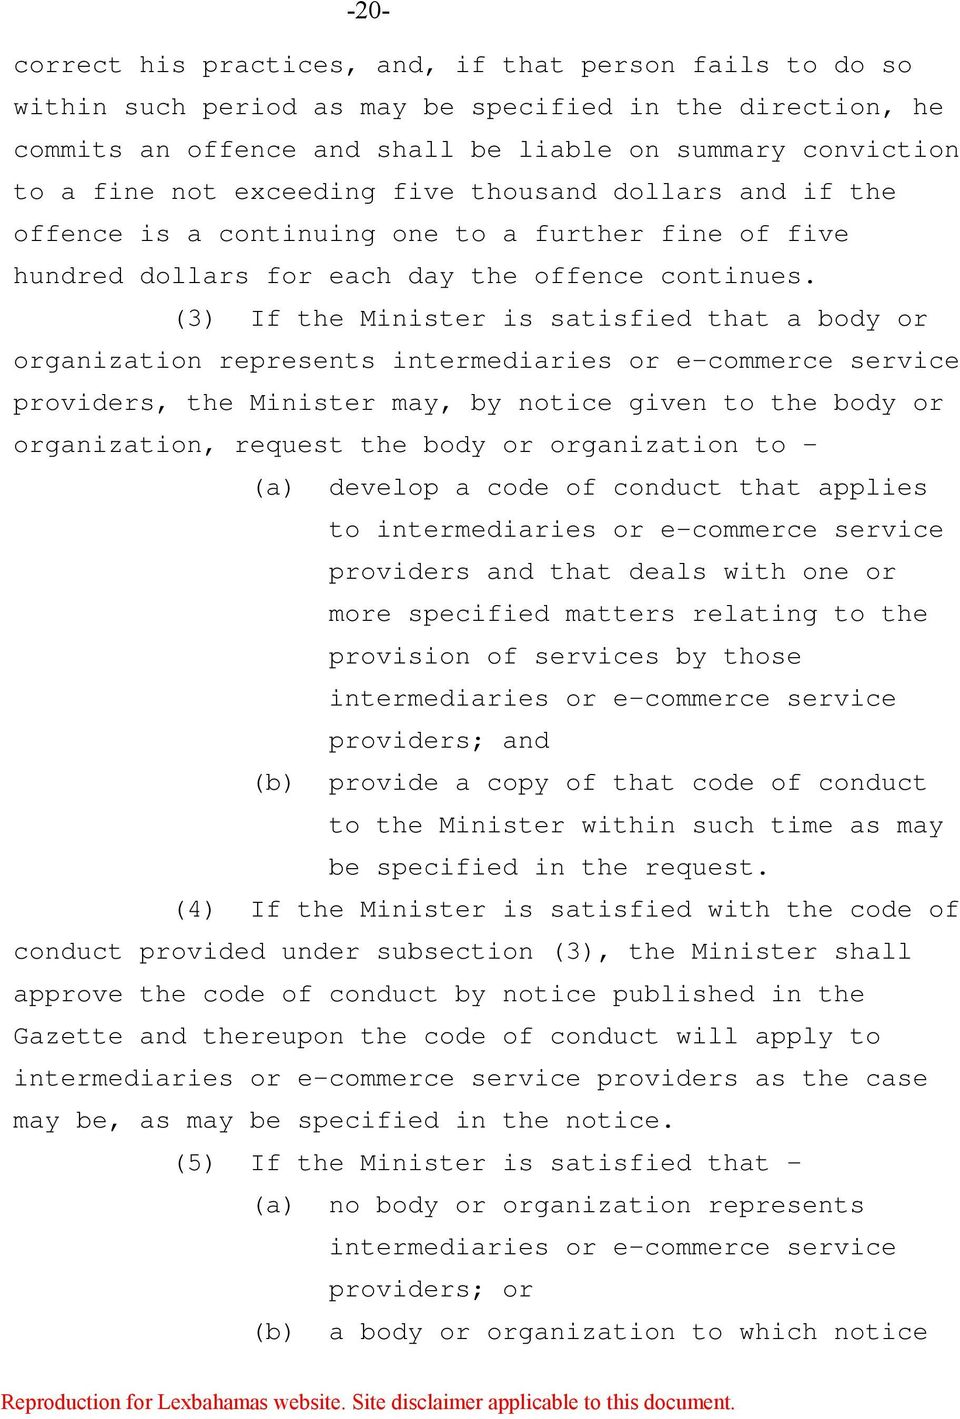 (3) If the Minister is satisfied that a body or organization represents intermediaries or e-commerce service providers, the Minister may, by notice given to the body or organization, request the body